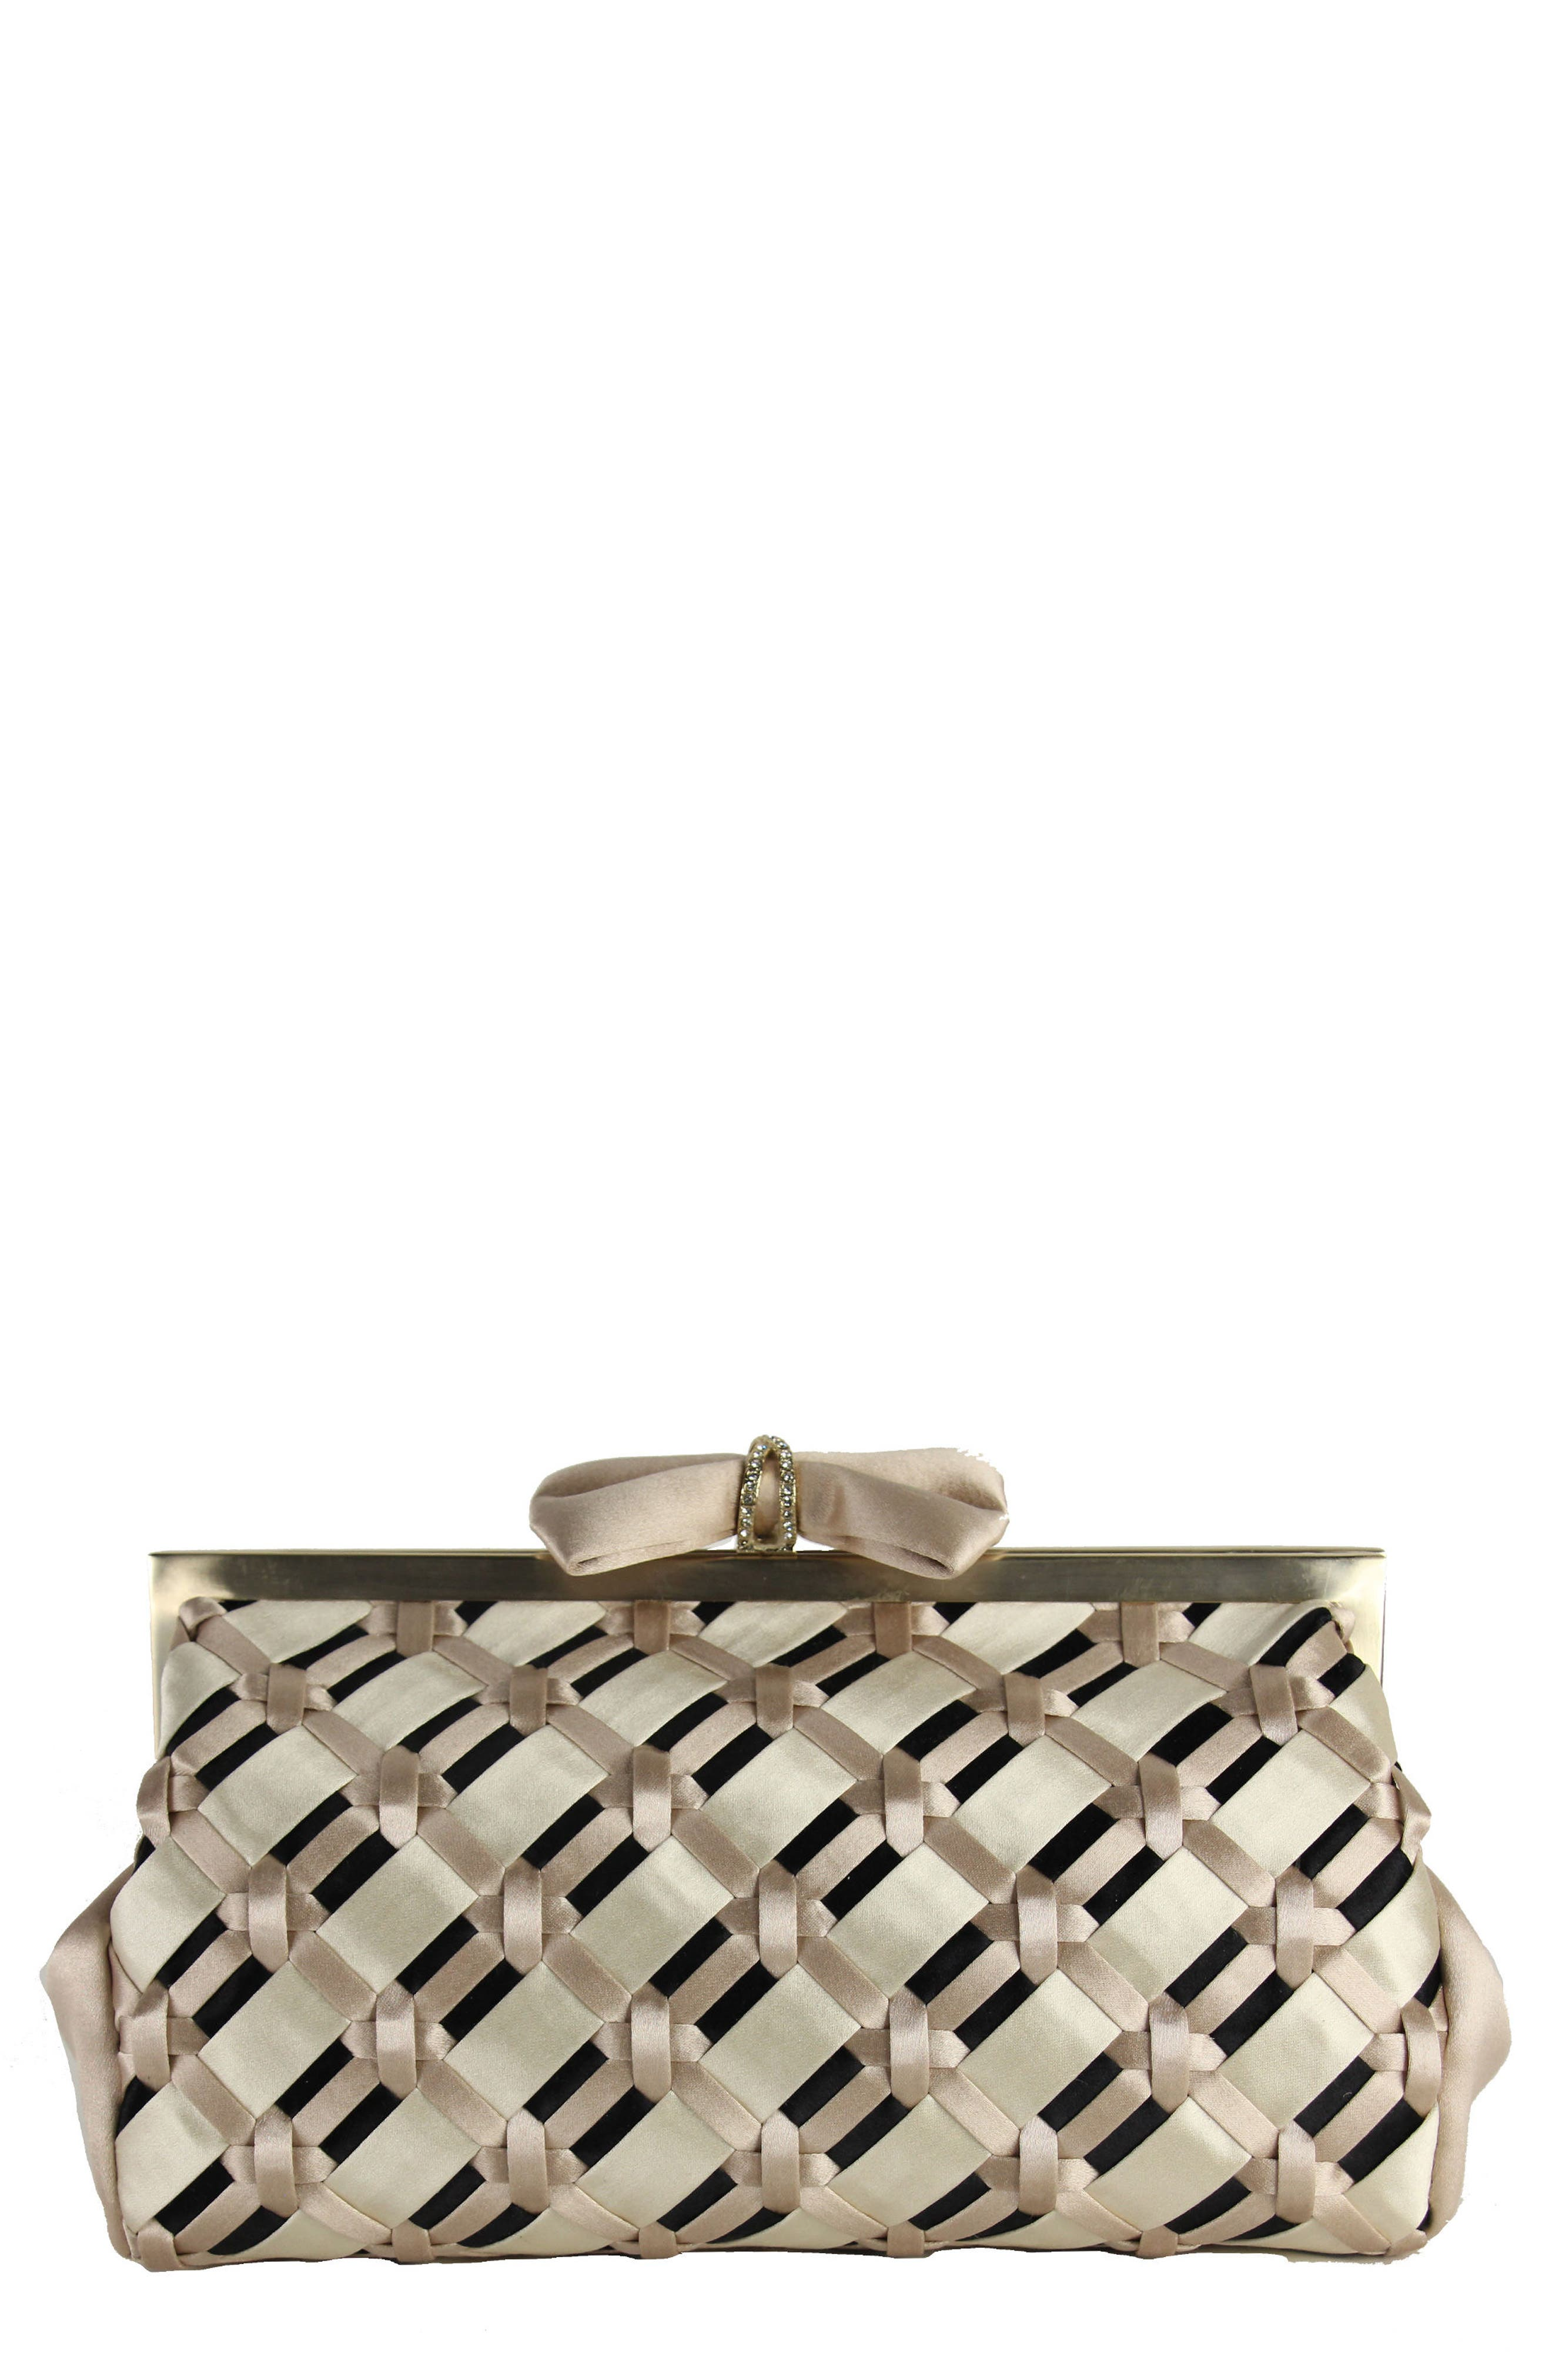 Badgley Mischka Grasp Satin Clutch